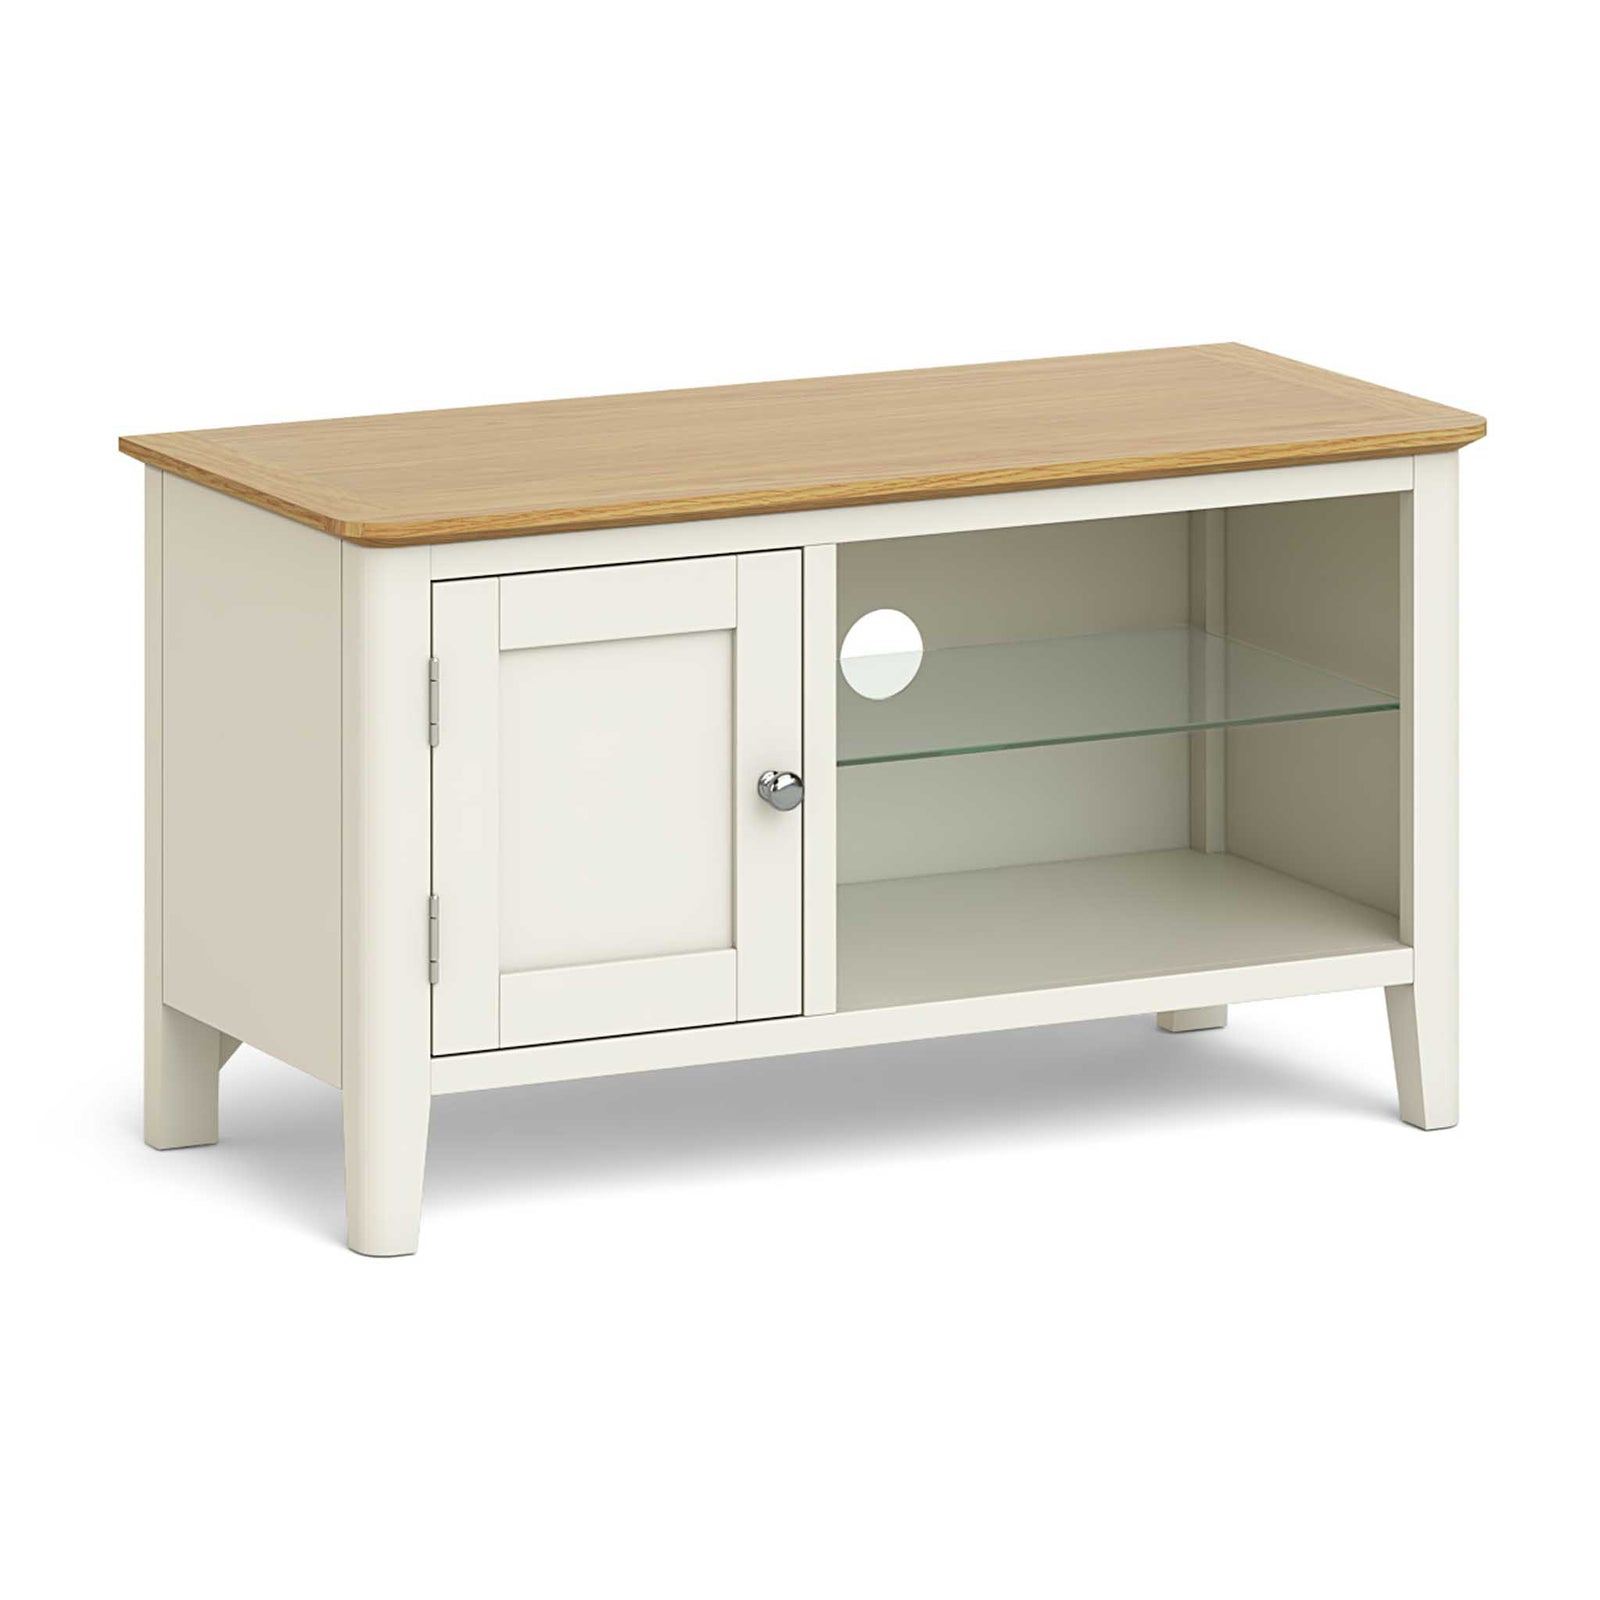 Wooden Tv Stands Roseland Furniture Tagged Windsor Cream